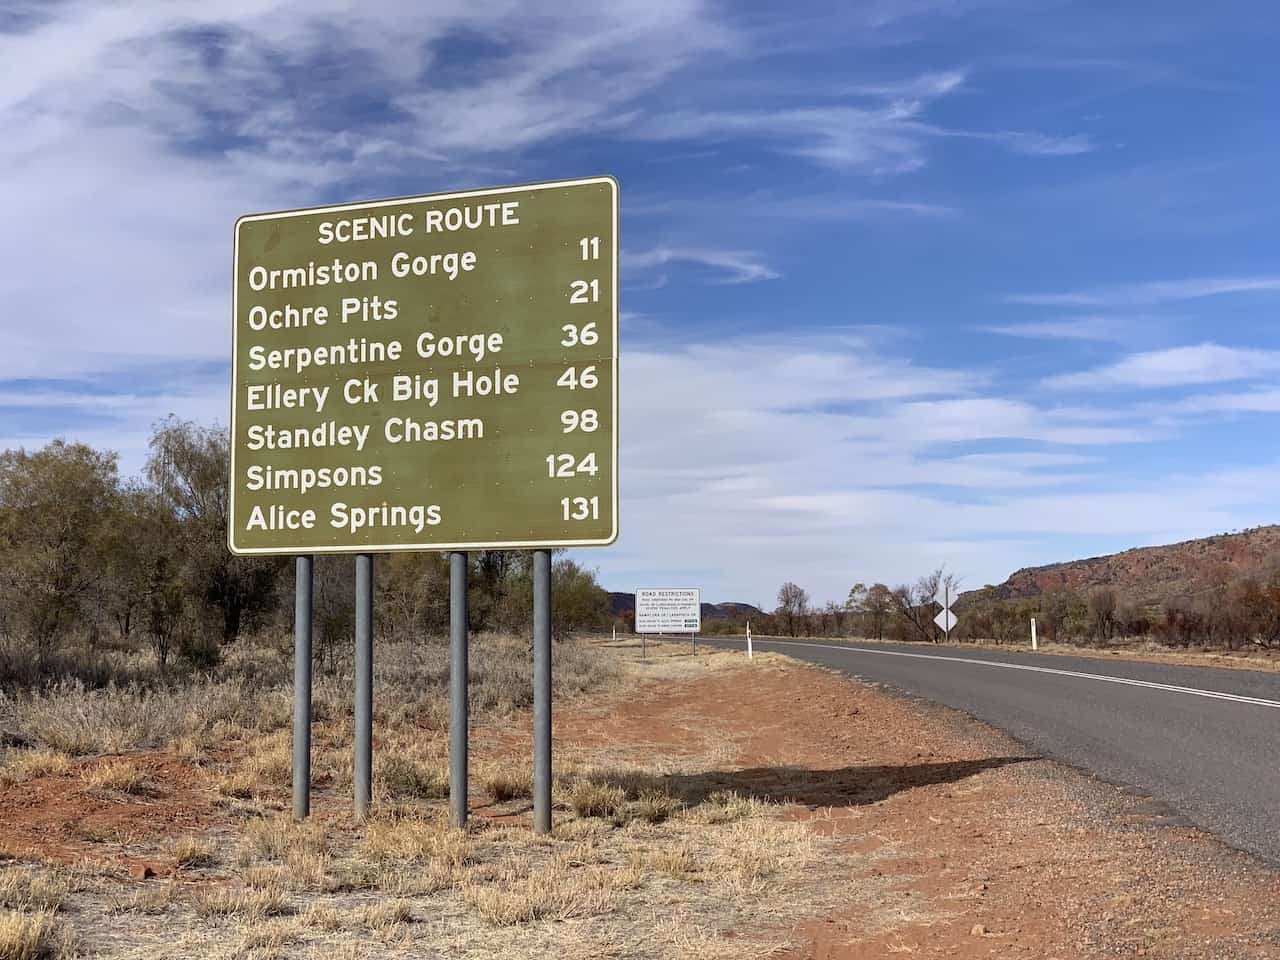 West MacDonnell Ranges Scenic Route